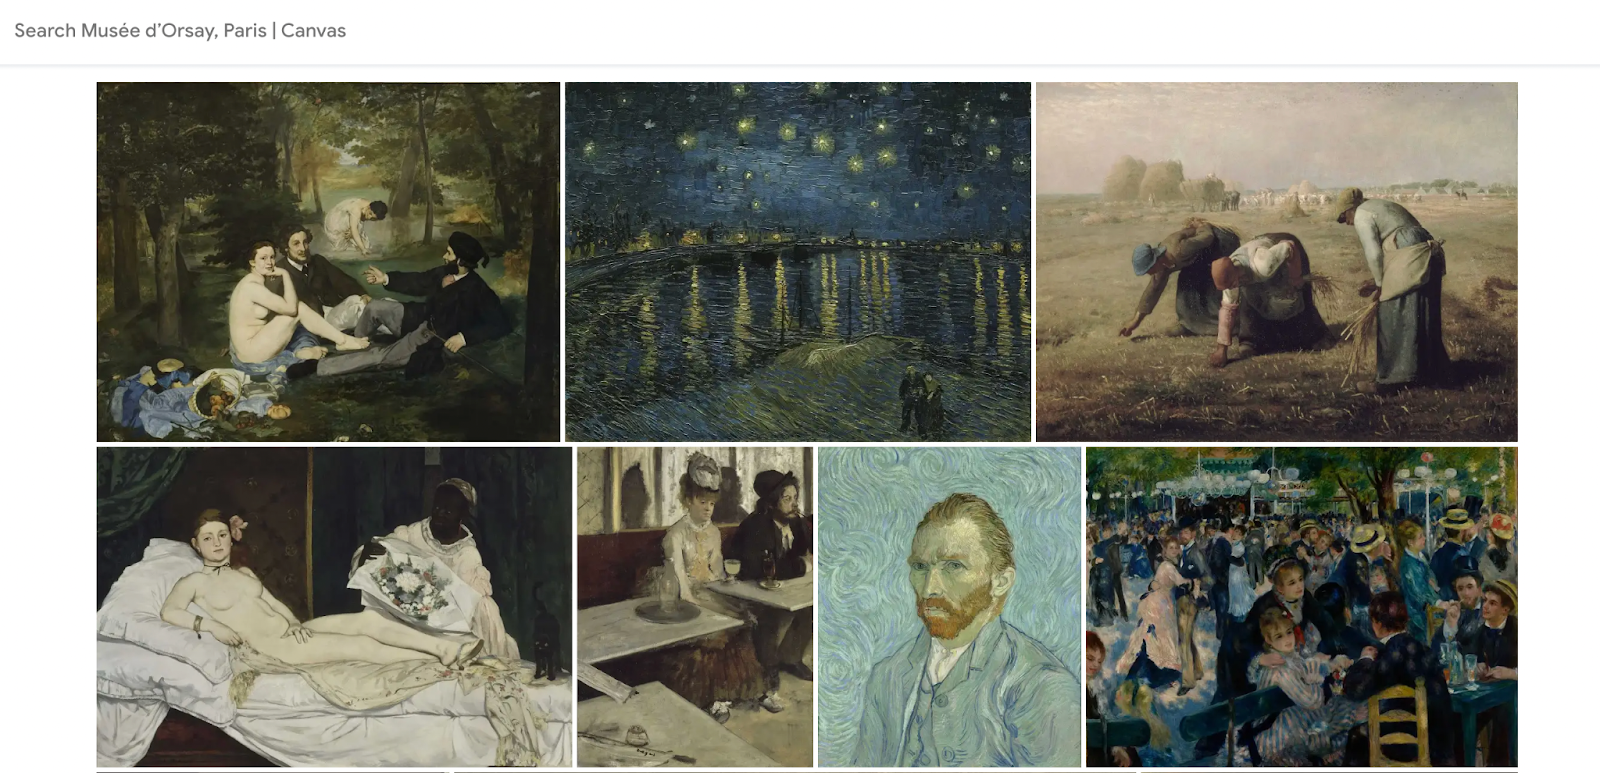 Digital collection of works at the Musée d'Orsay in Paris.